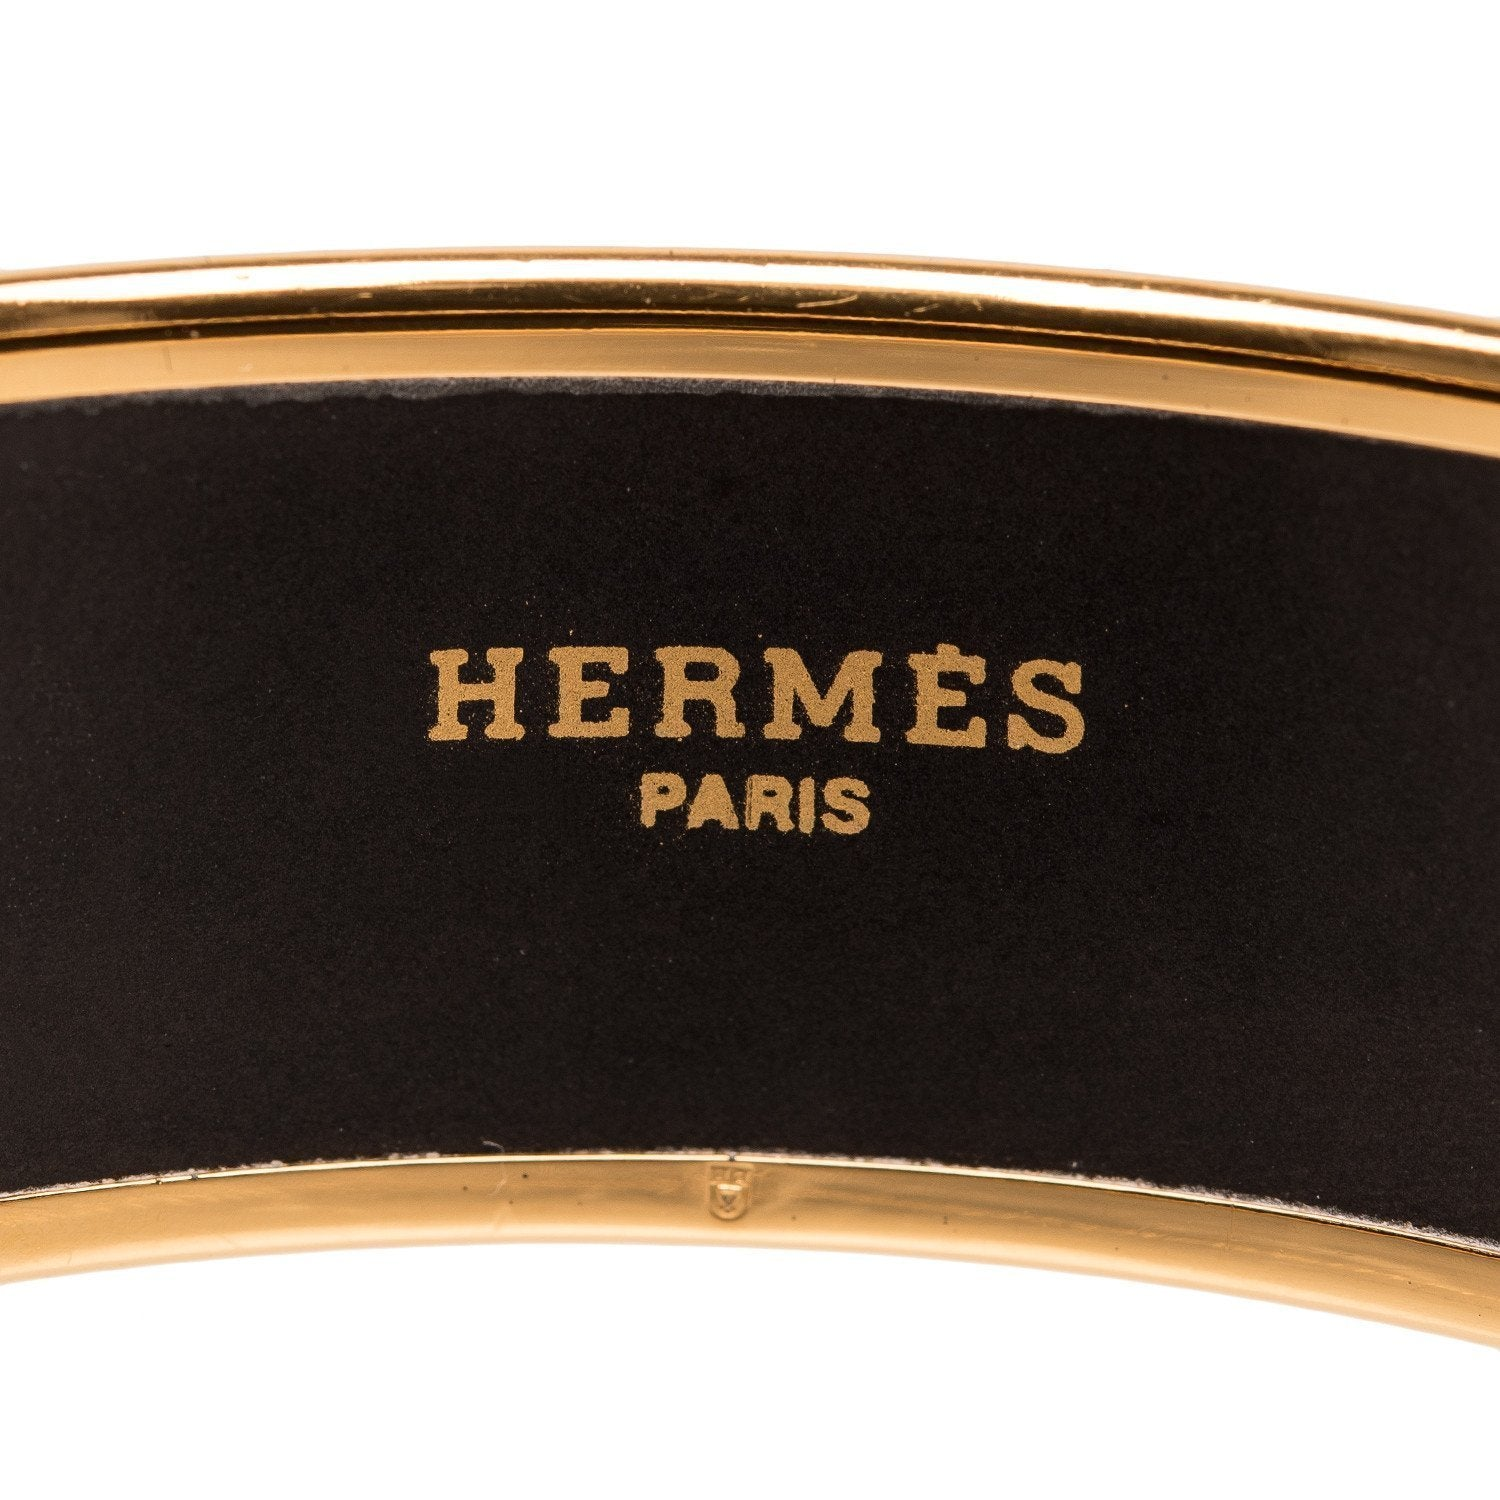 Hermes Horse And Carriage Printed Wide Enamel Bracelet Pm 65 Gold Hardware Accessories